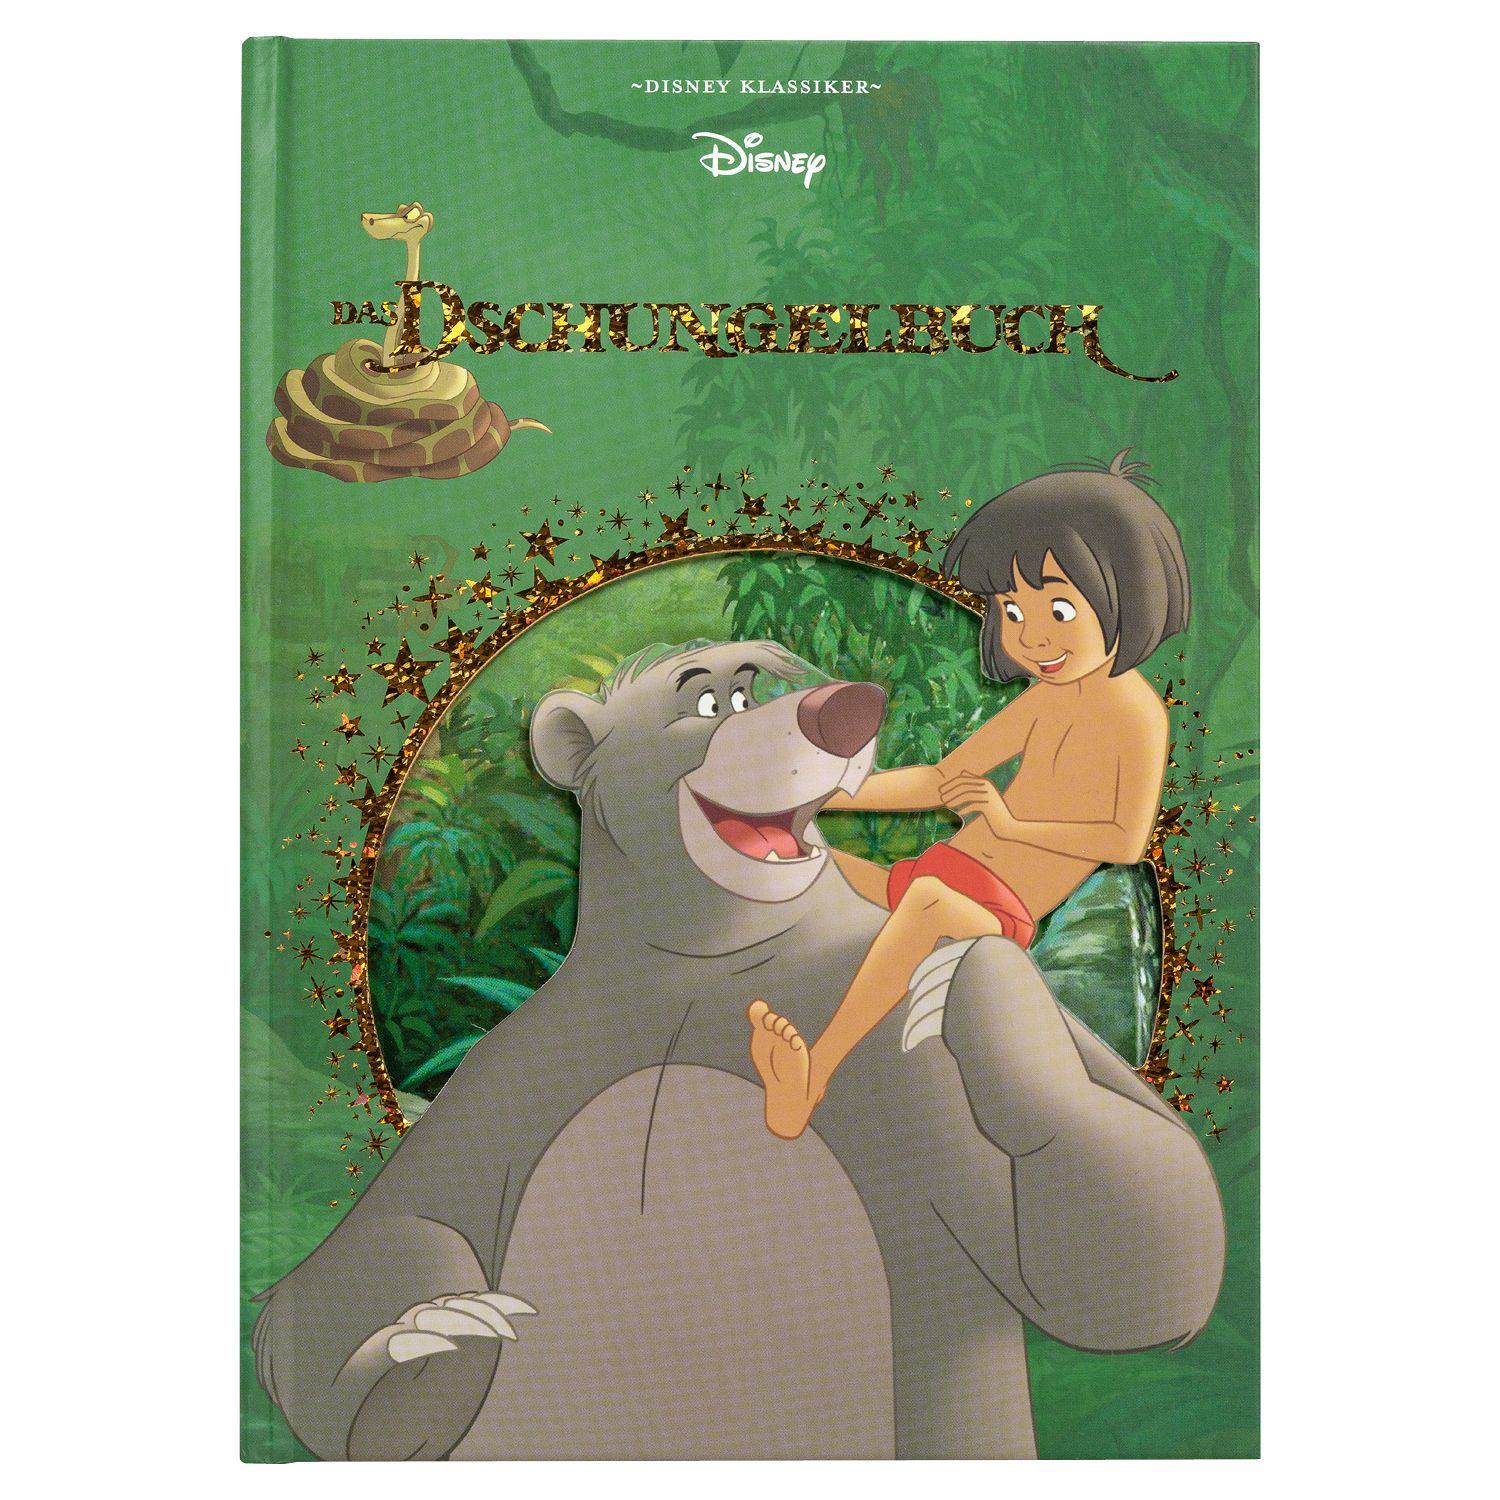 DISNEY Kinderbuch*